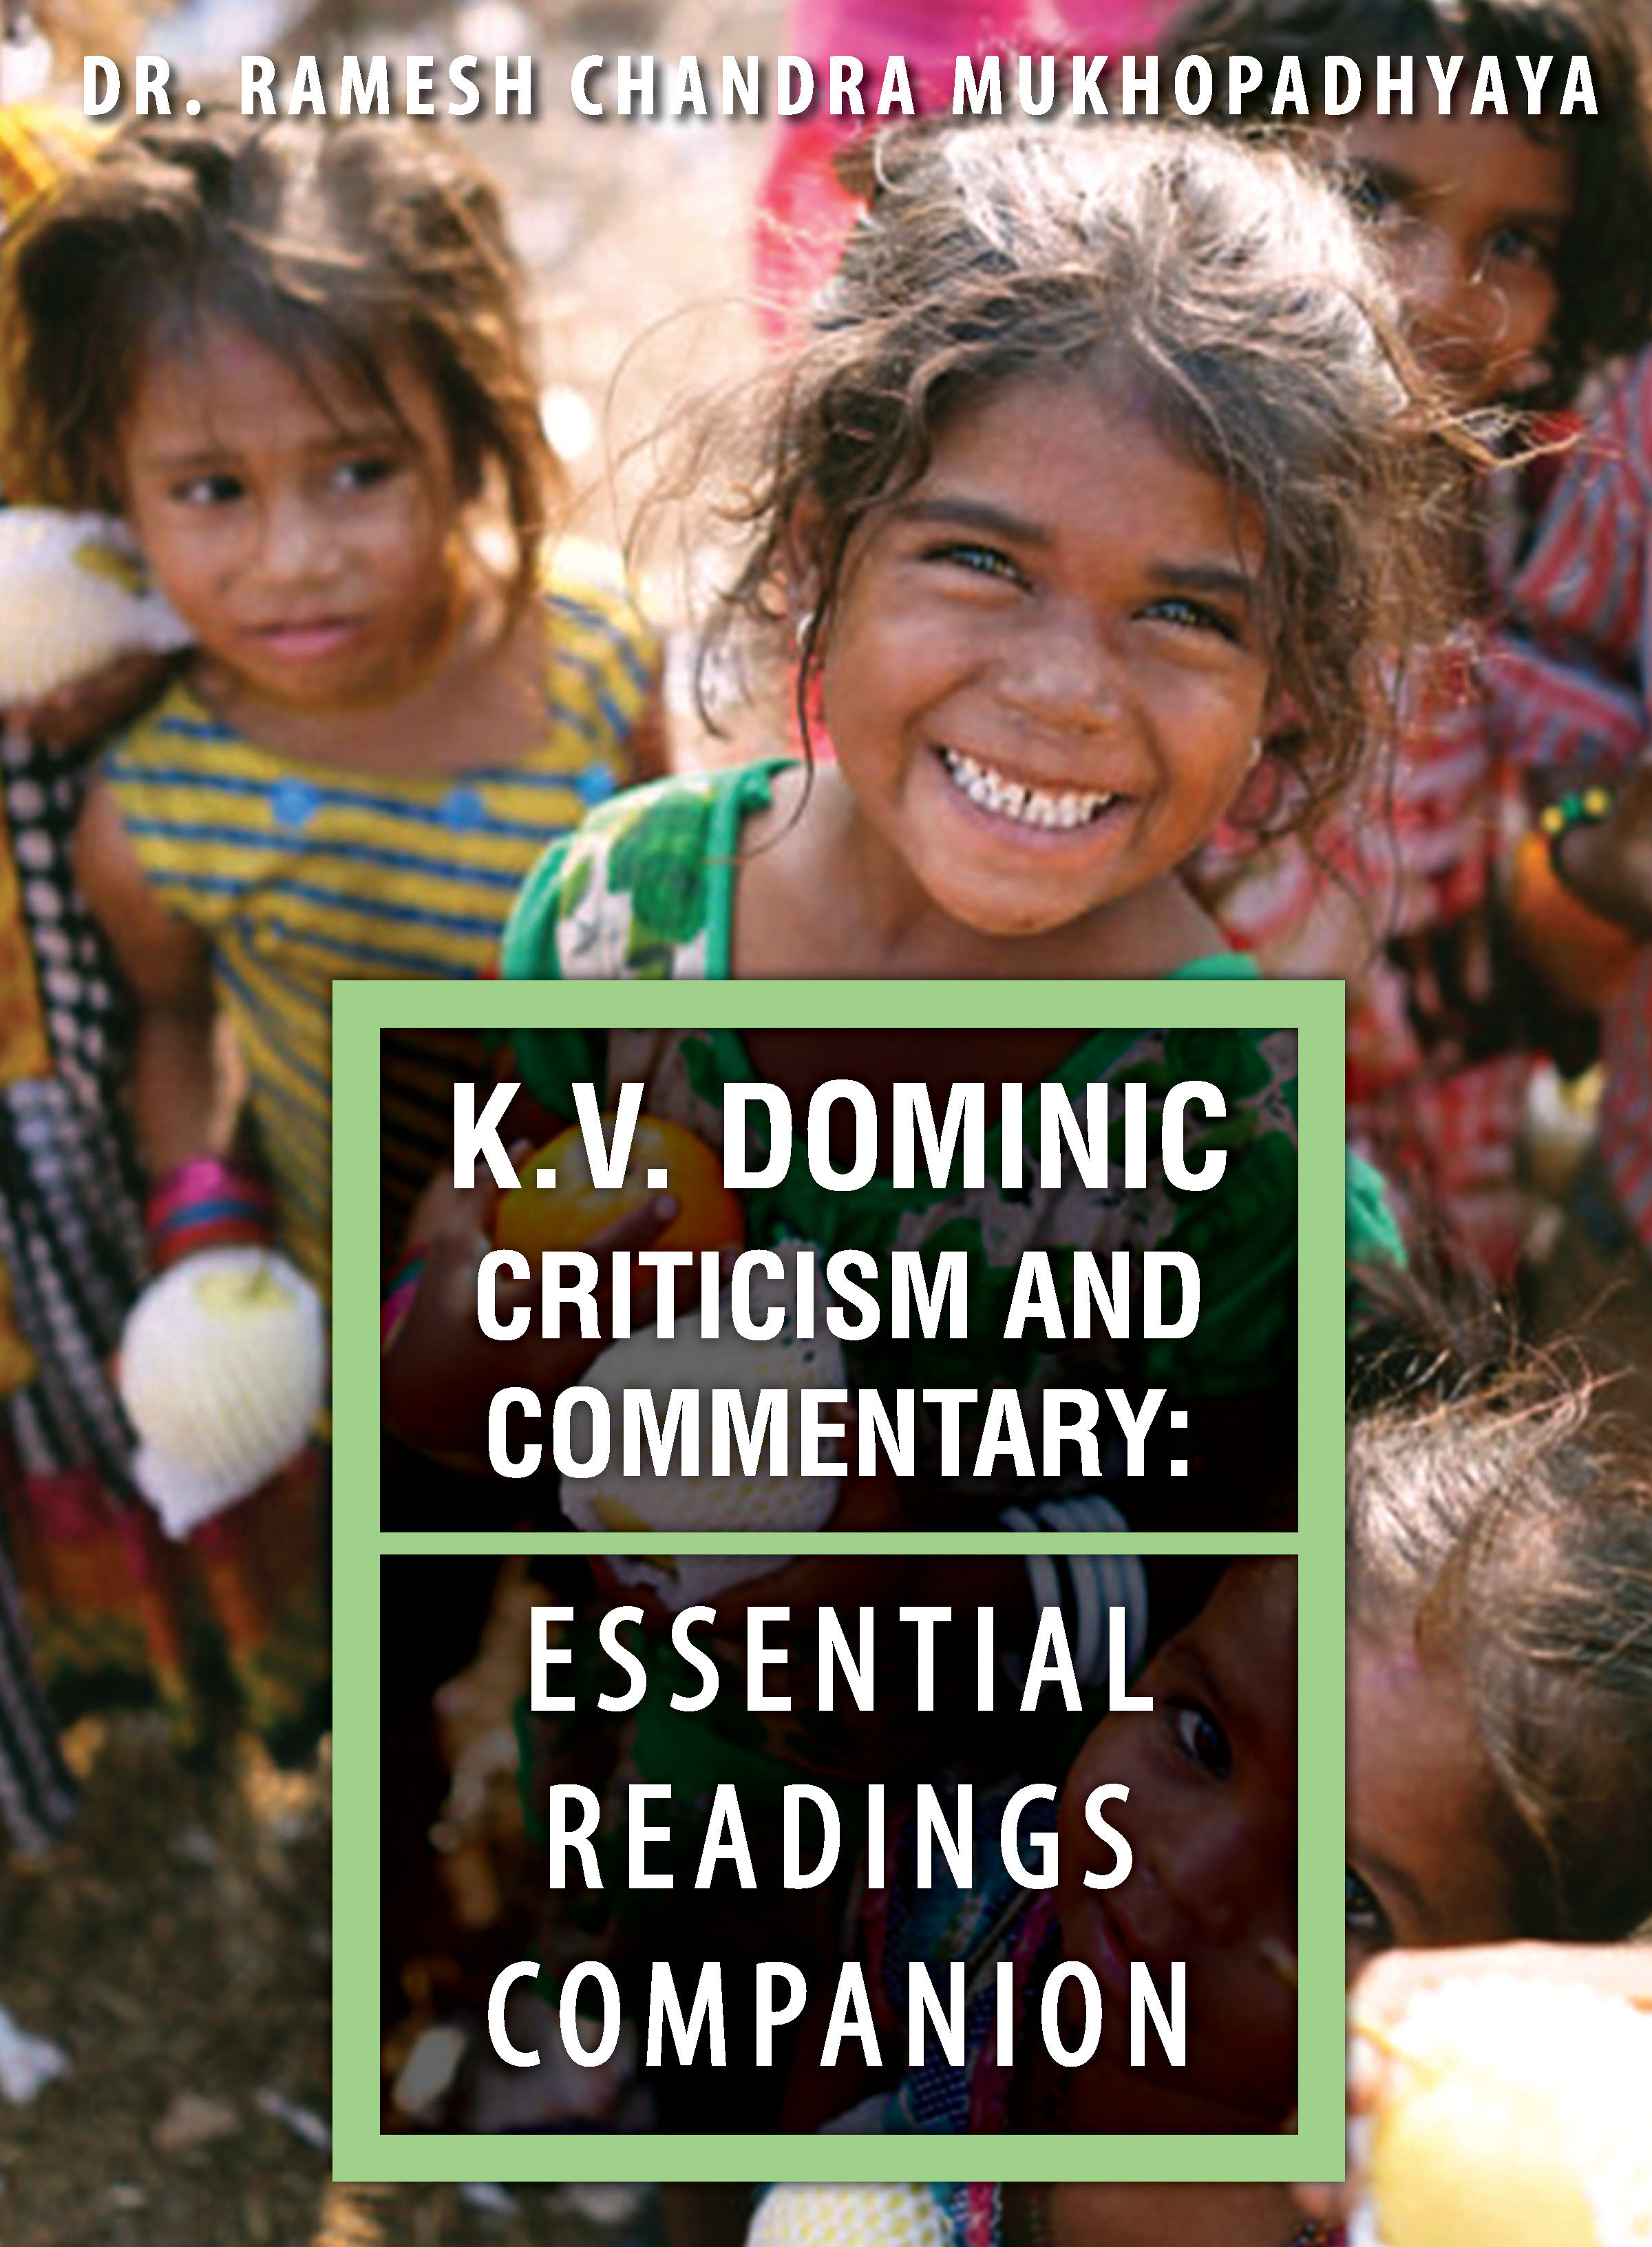 K.V. Dominic Criticism and Commentary: Essential Readings Companion 978-1-61599-357-4